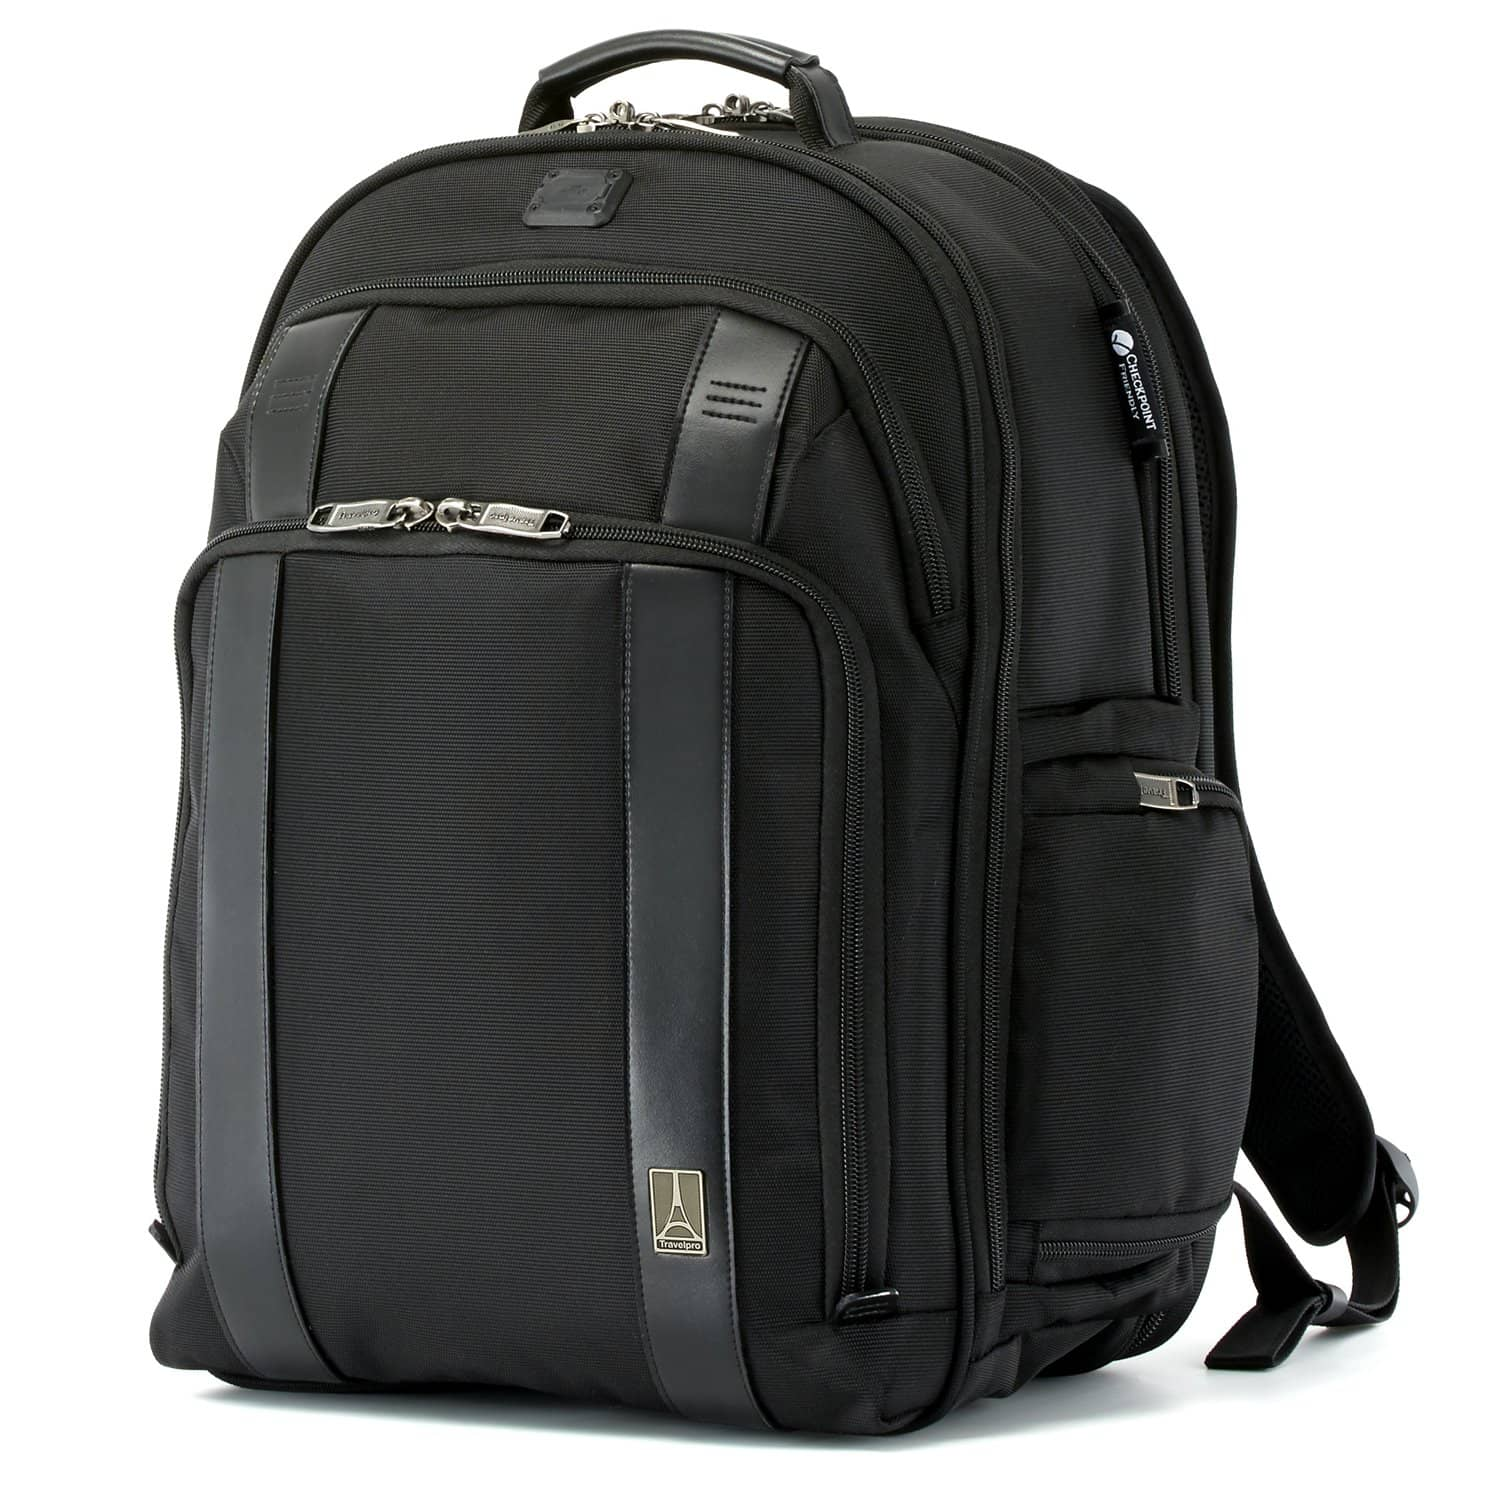 Travelpro Crew™ Executive Choice™ 2 Checkpoint Friendly Backpack BLACK